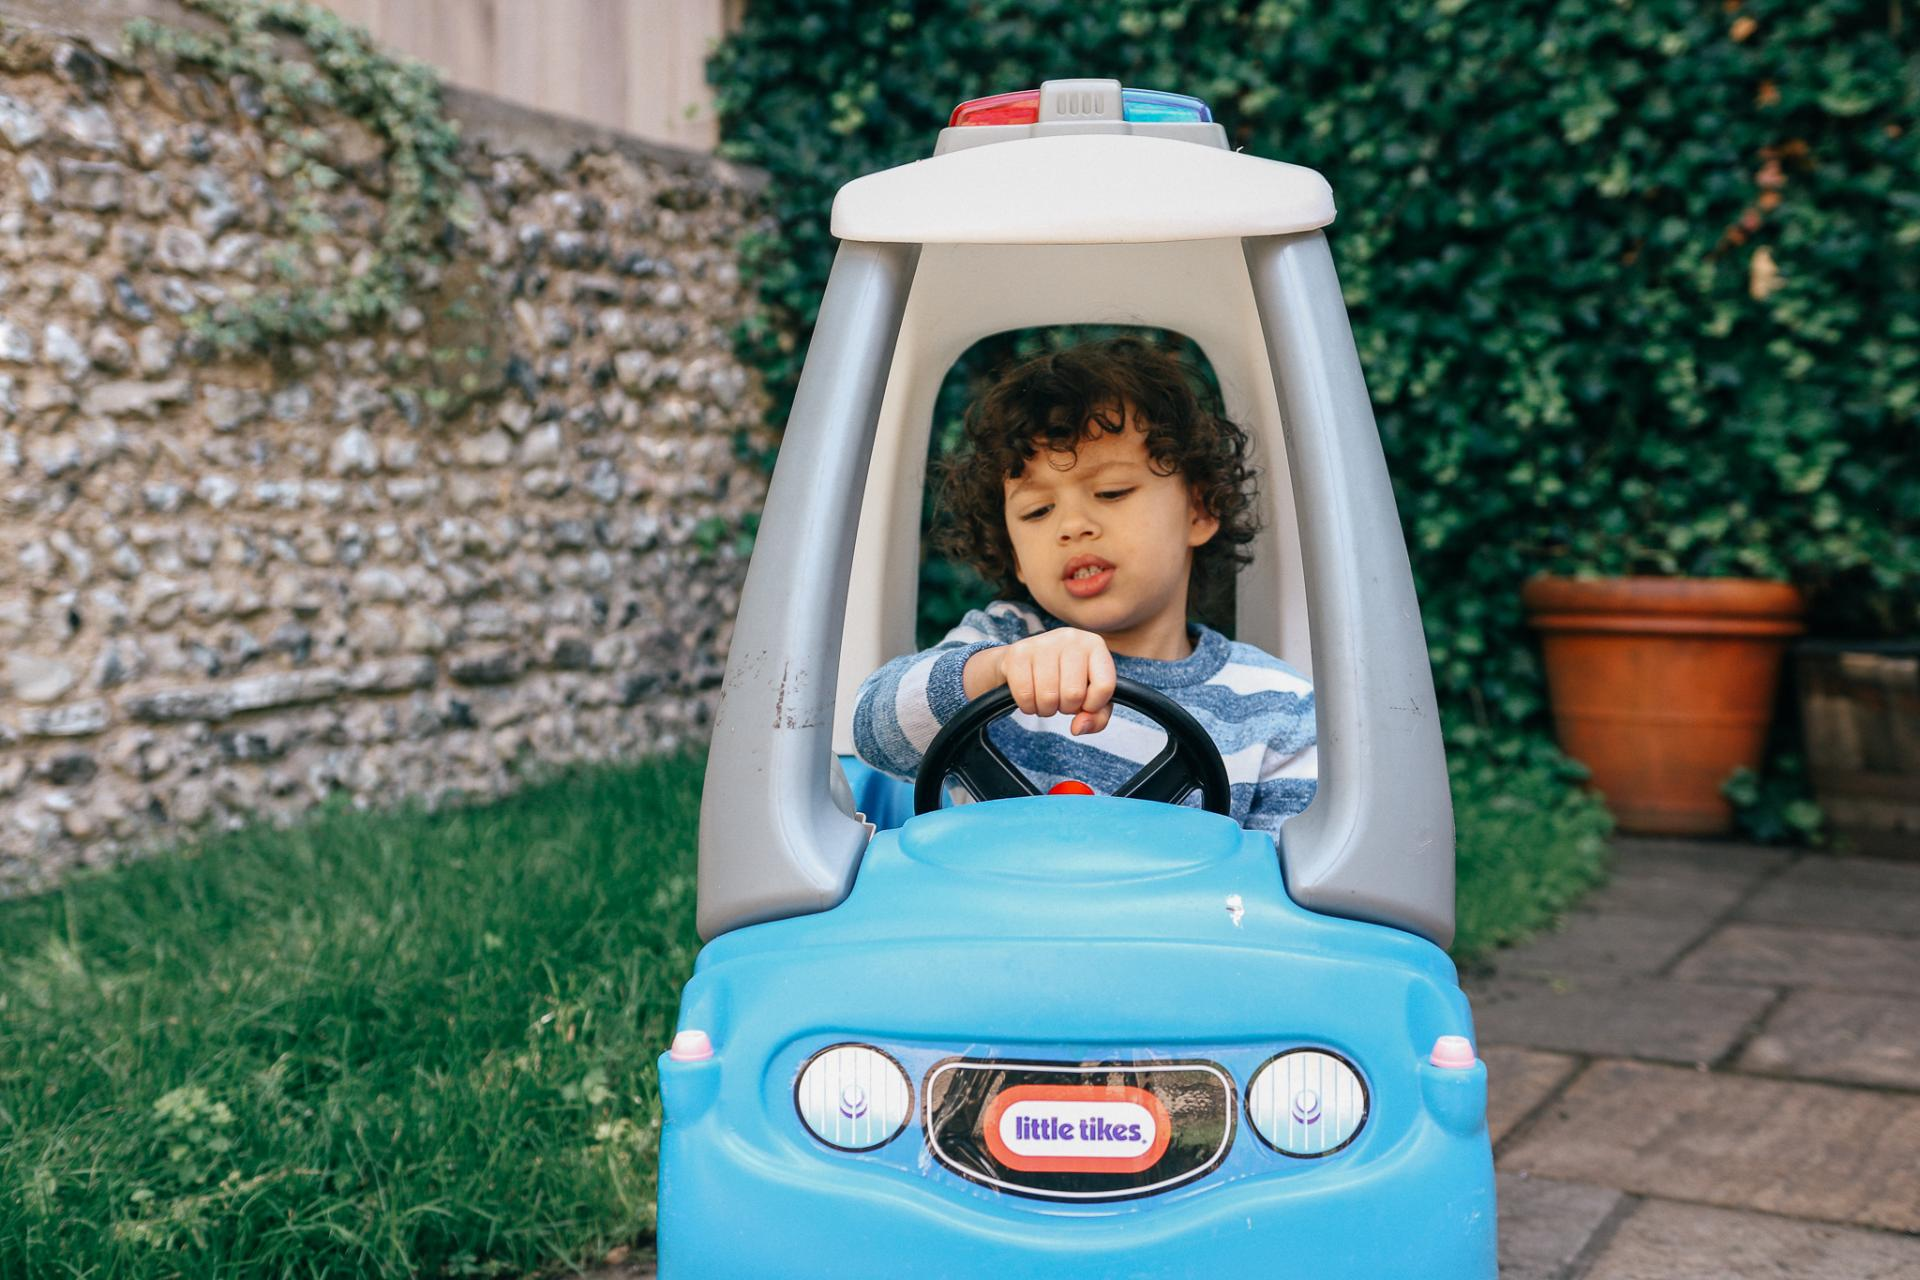 eleanorbarkes.com - top tips while driving with the kids